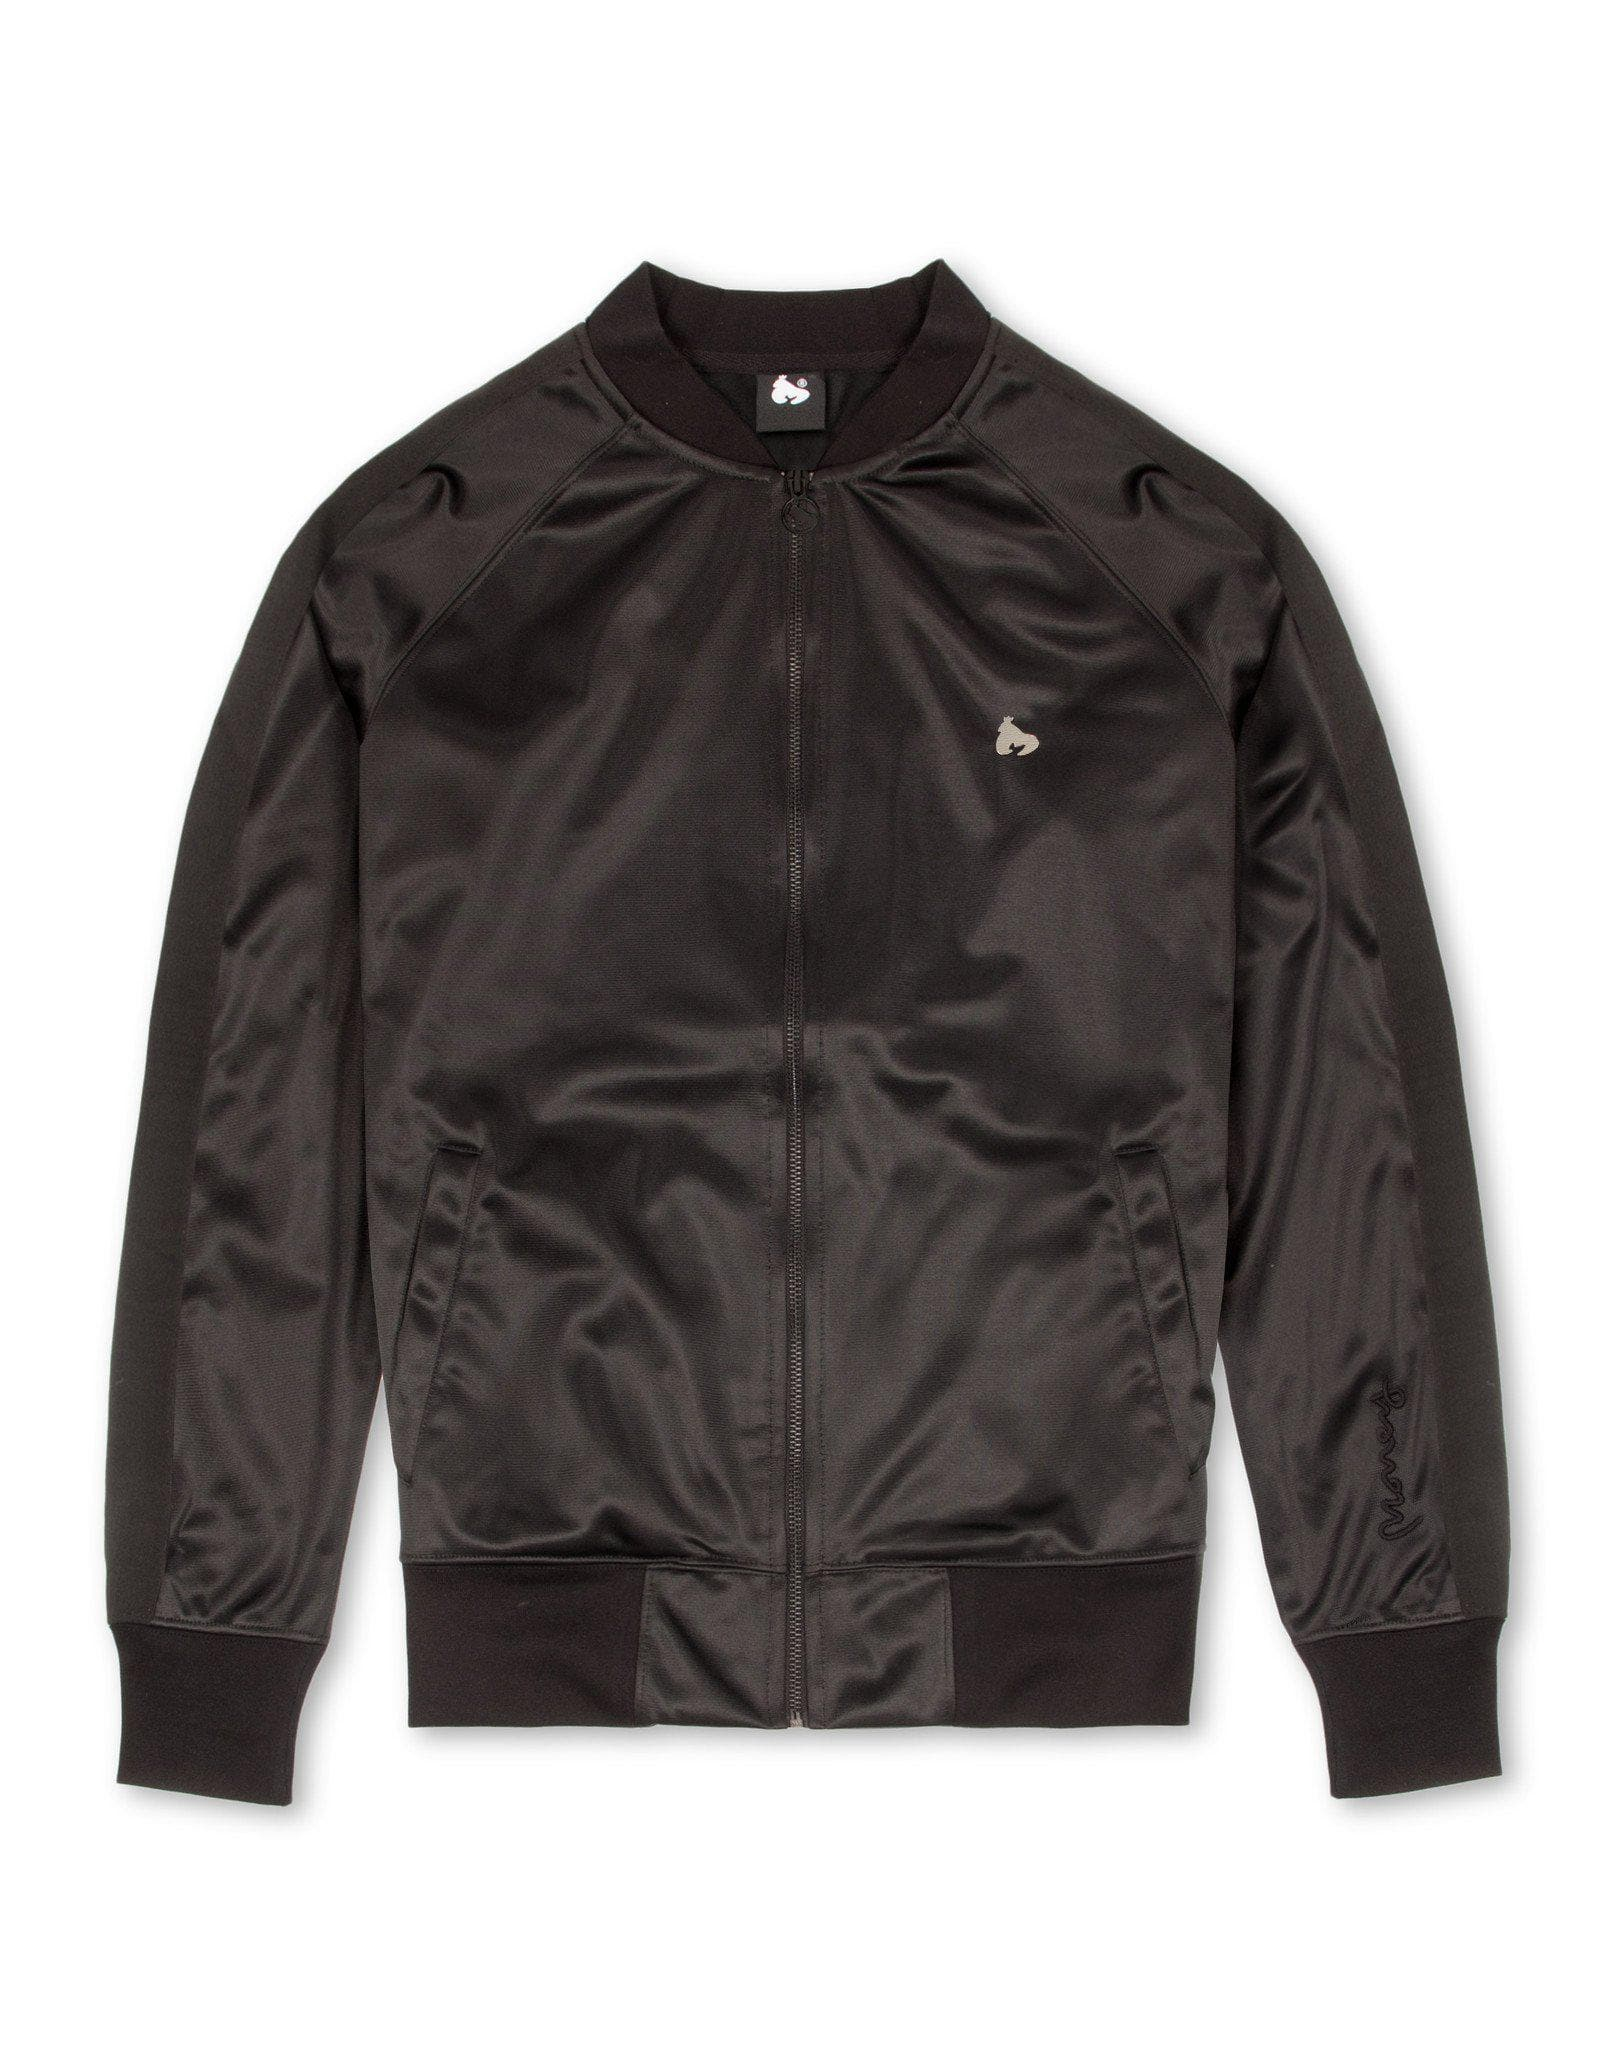 Money Zamac Tricote Track Jacket